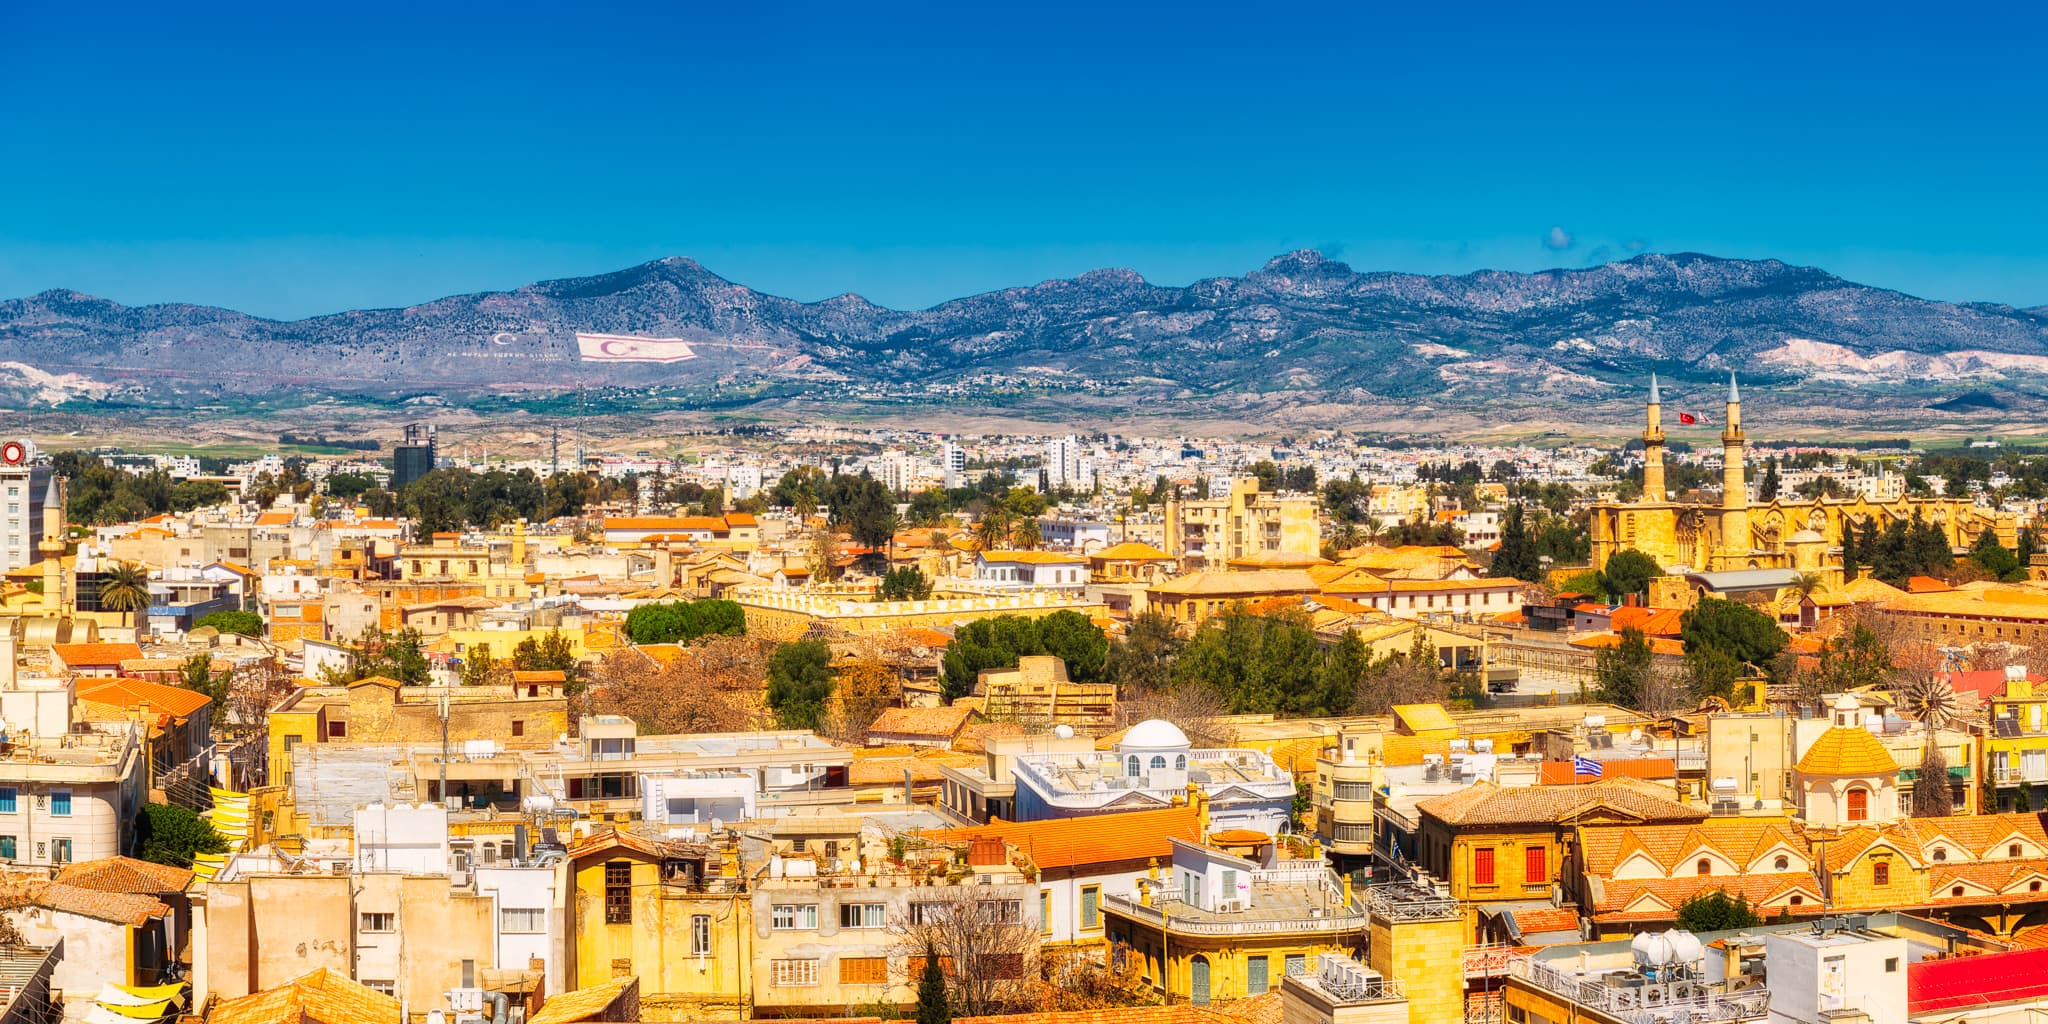 Panorama of the capital of Cyprus - Nicosia during a sunny day